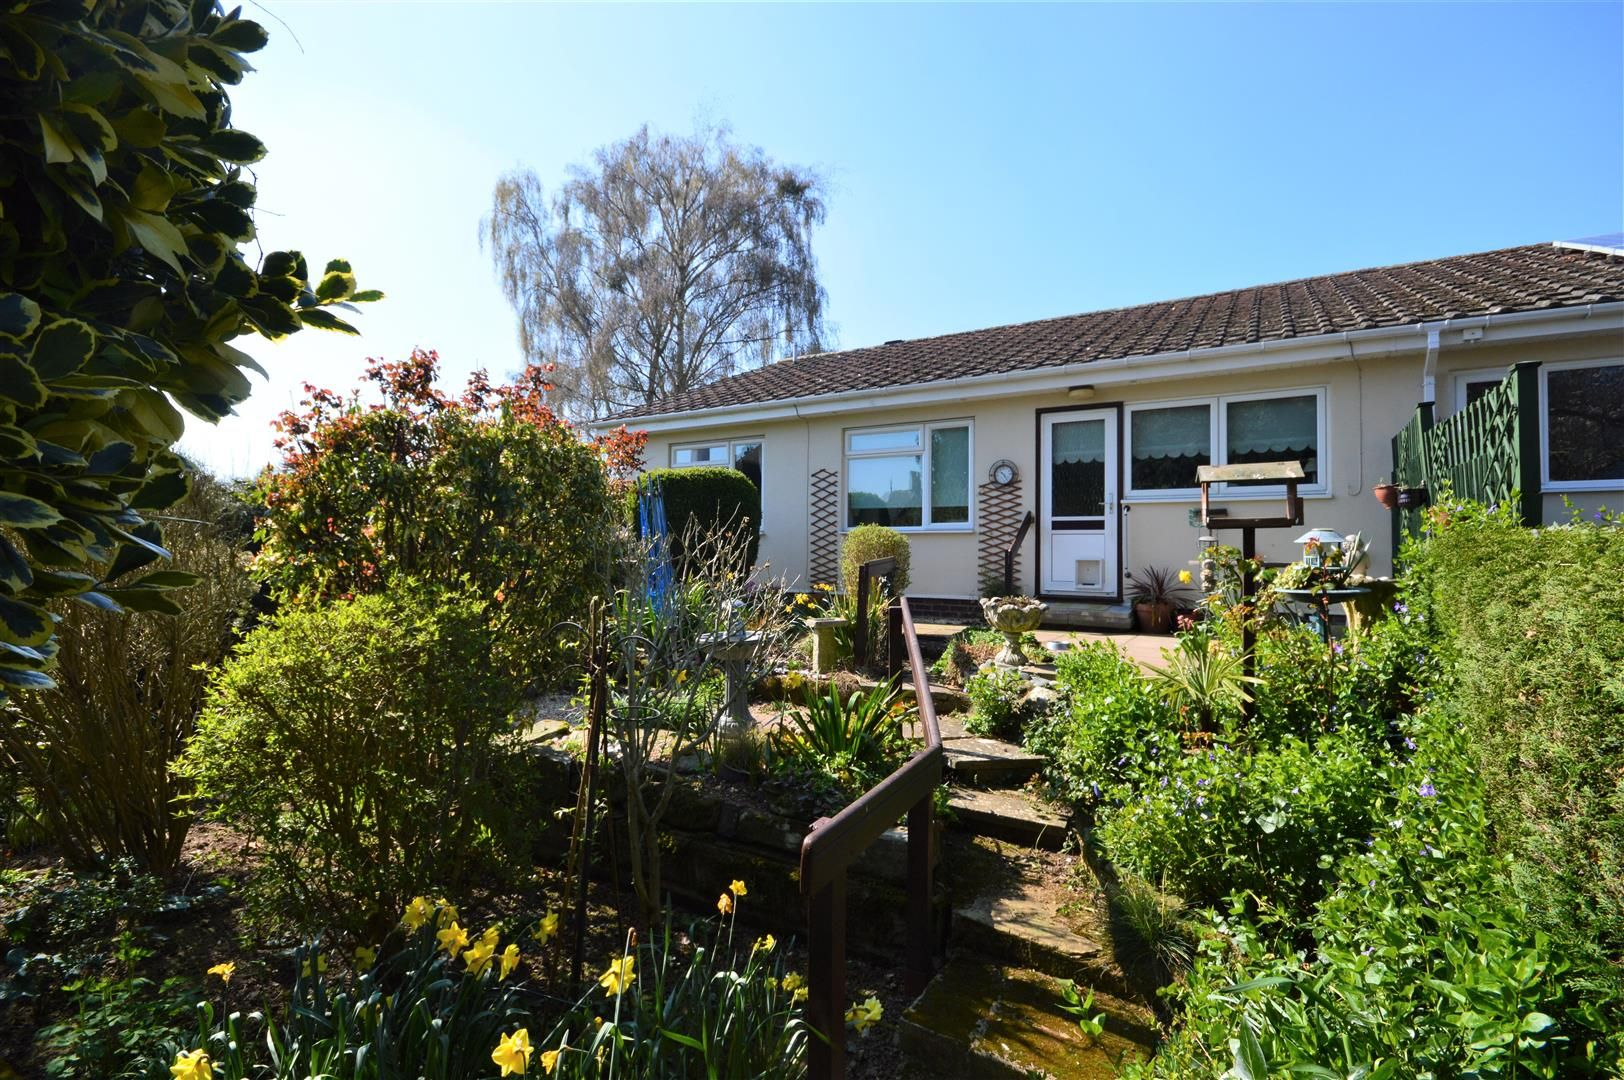 2 bed semi-detached-bungalow for sale in Leominster 7